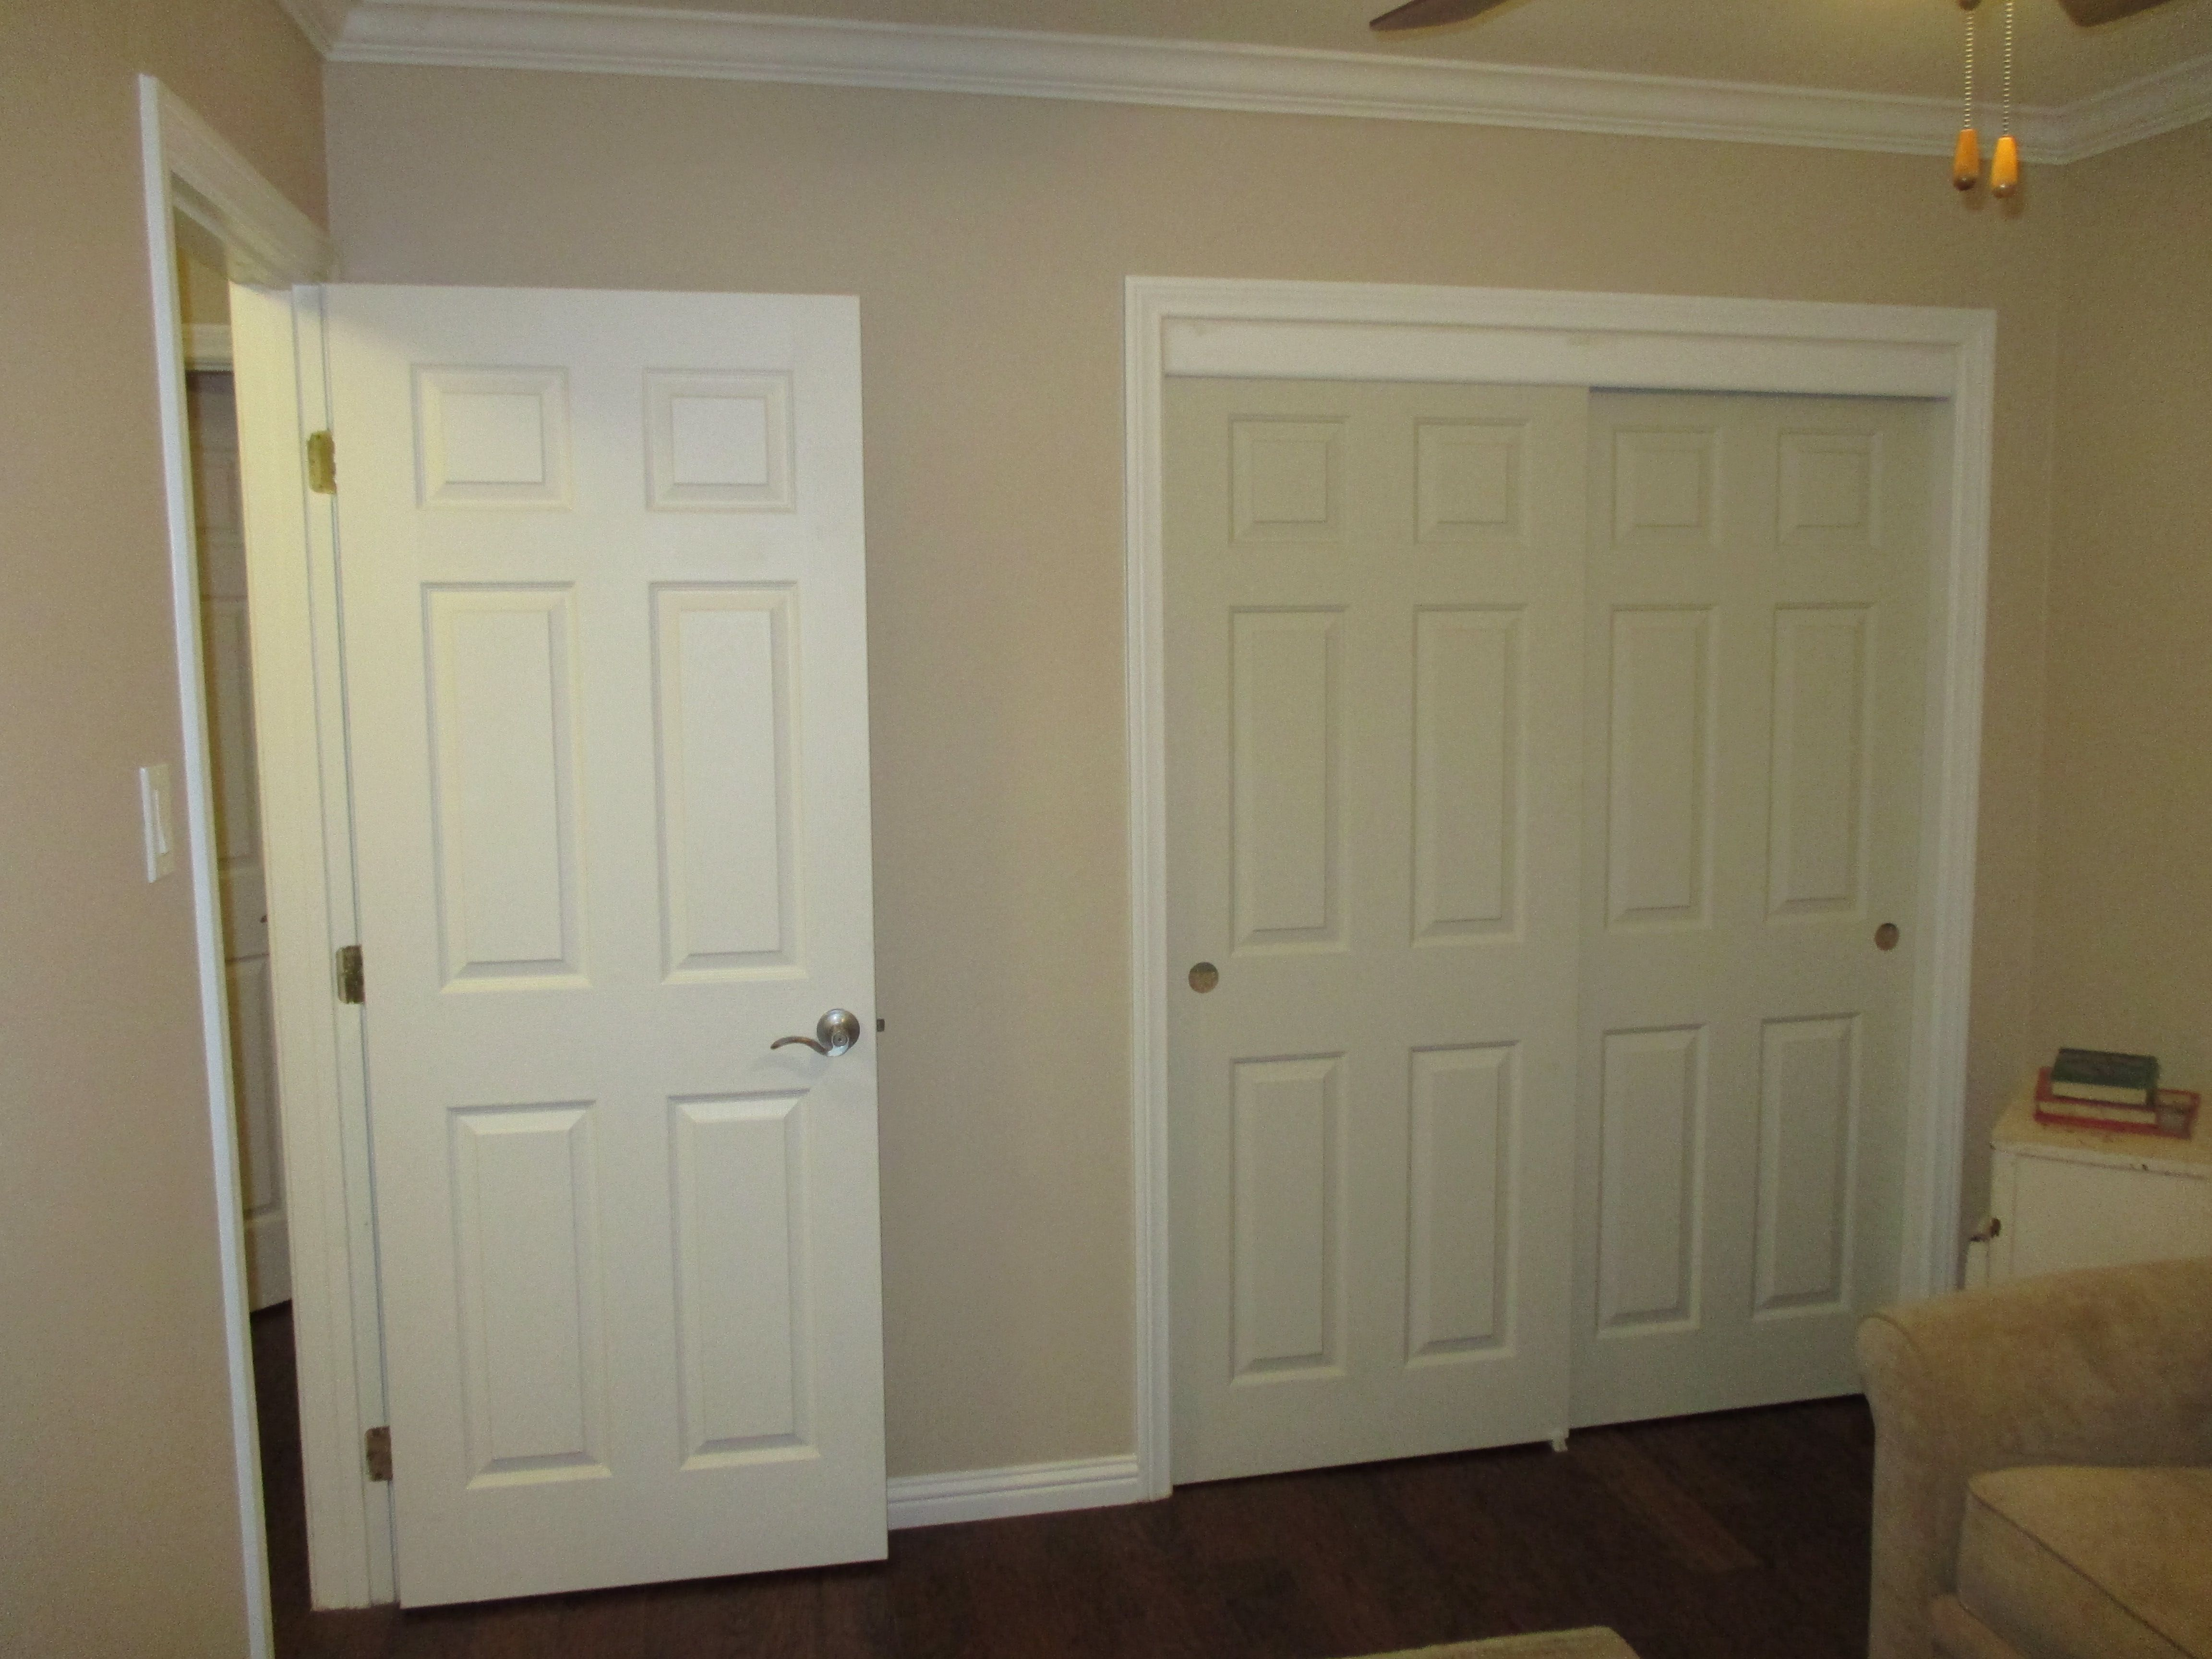 Bypass Closet Doors Or Sliding Closet Doors Are Available In So Many Options Such As The 2 Panel 2 Track Mirro Closet Doors Sliding Panels Sliding Closet Doors